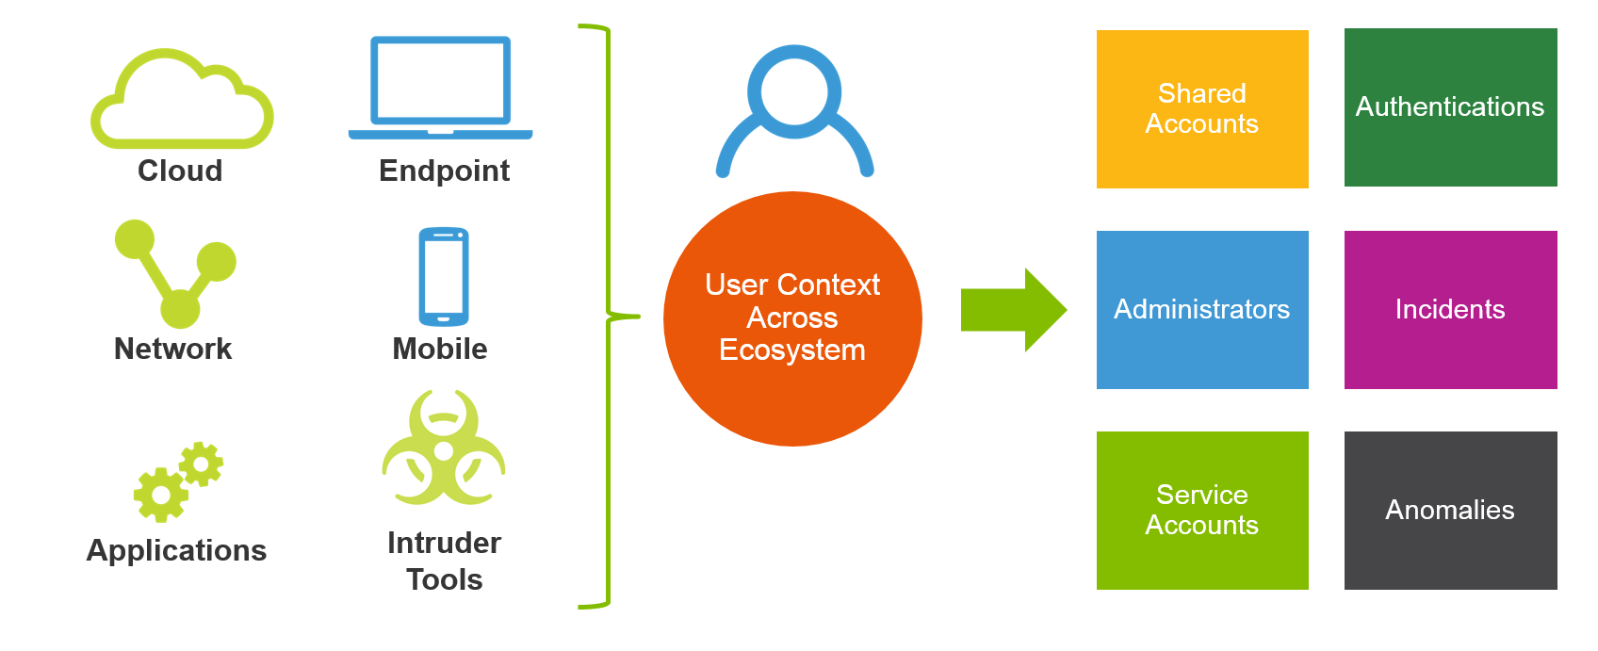 From Windows to Office 365: Detecting Intruder Behavior in